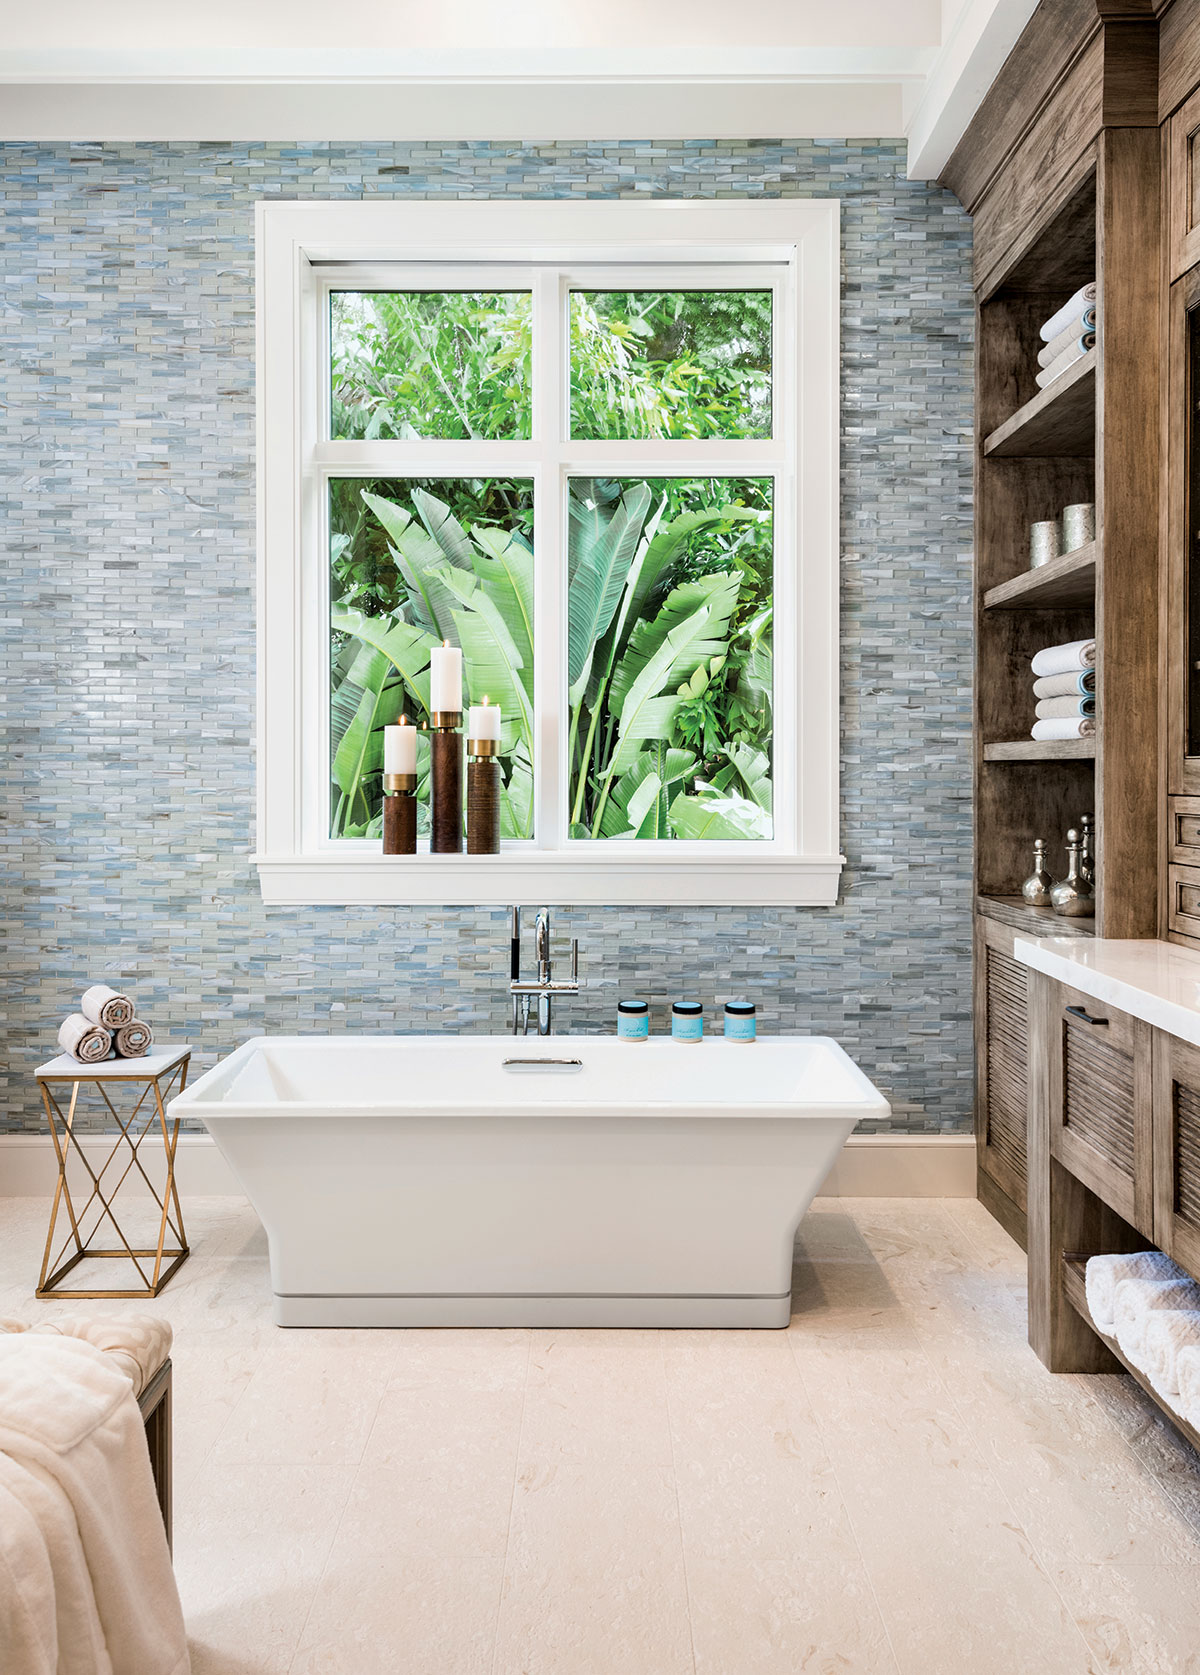 The tranquil, contemporary master bath reflects the homes coastal theme with a glass tile wall in tones of cool pale blue and soft greens. A rectangular vessel sink adds a spa-like vibe.